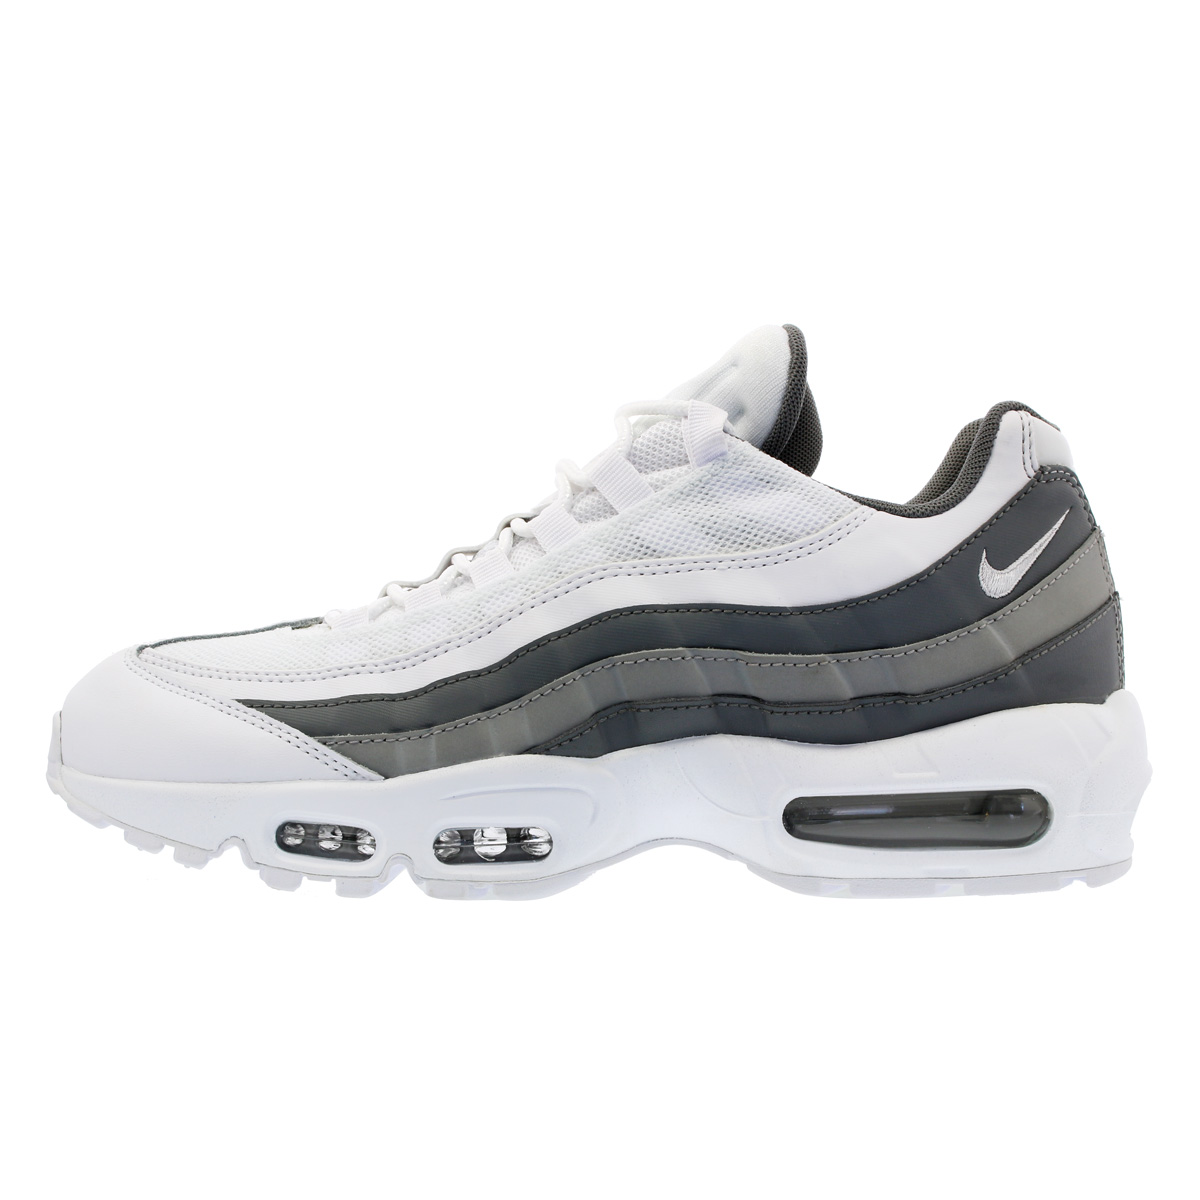 Nike Air Max 95 Essential White Cool Grey Wolf Grey 749766 105 Men's Running Shoes Sneakers